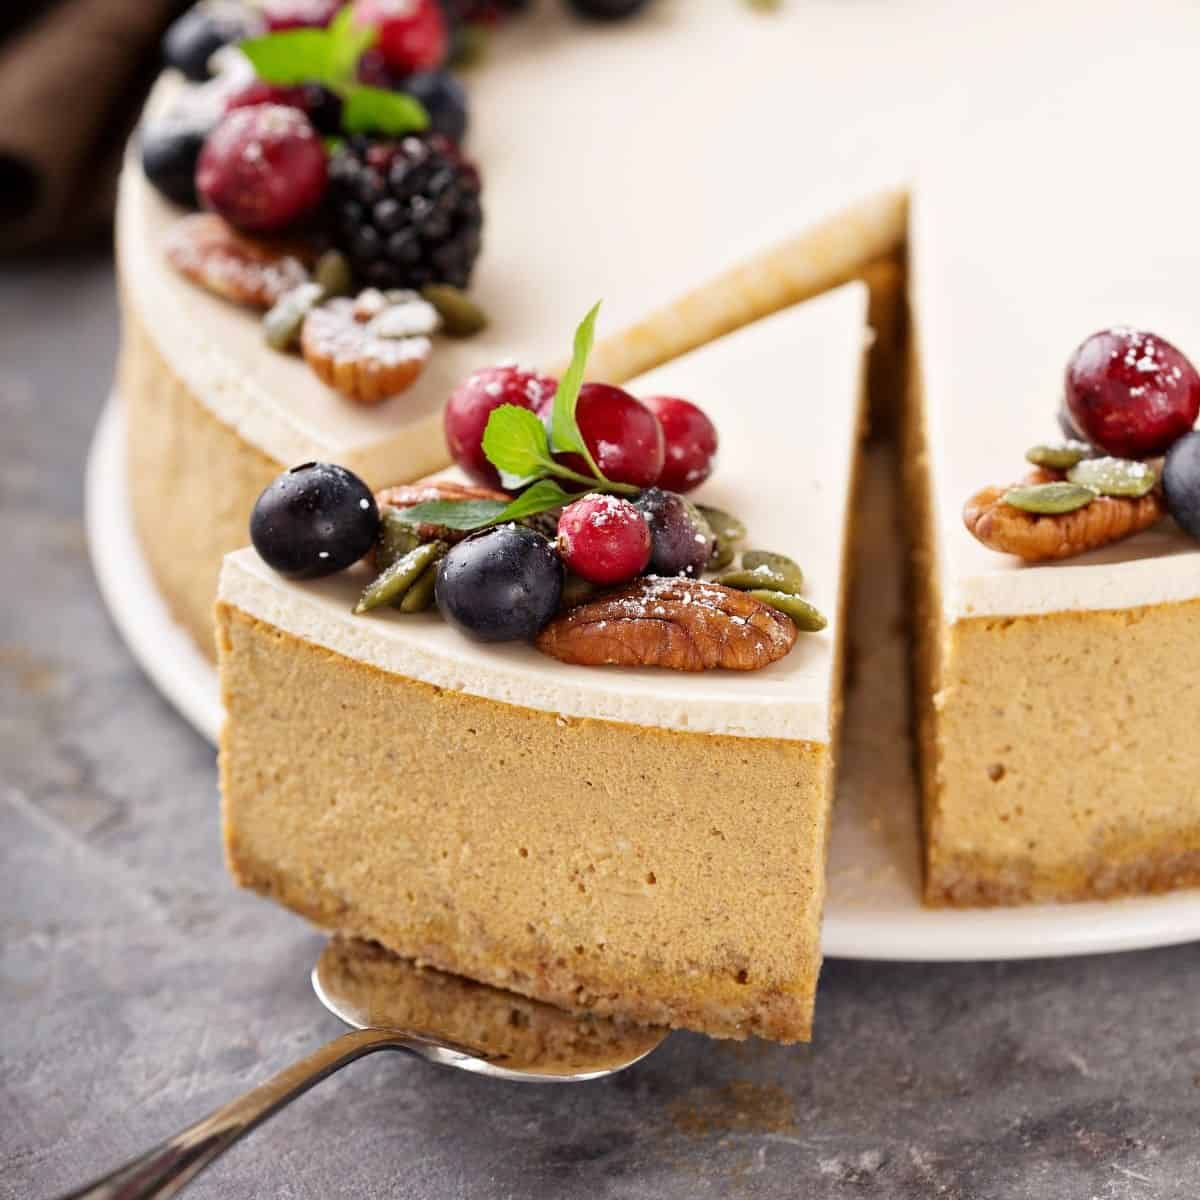 cheesecake topped with nuts and berries